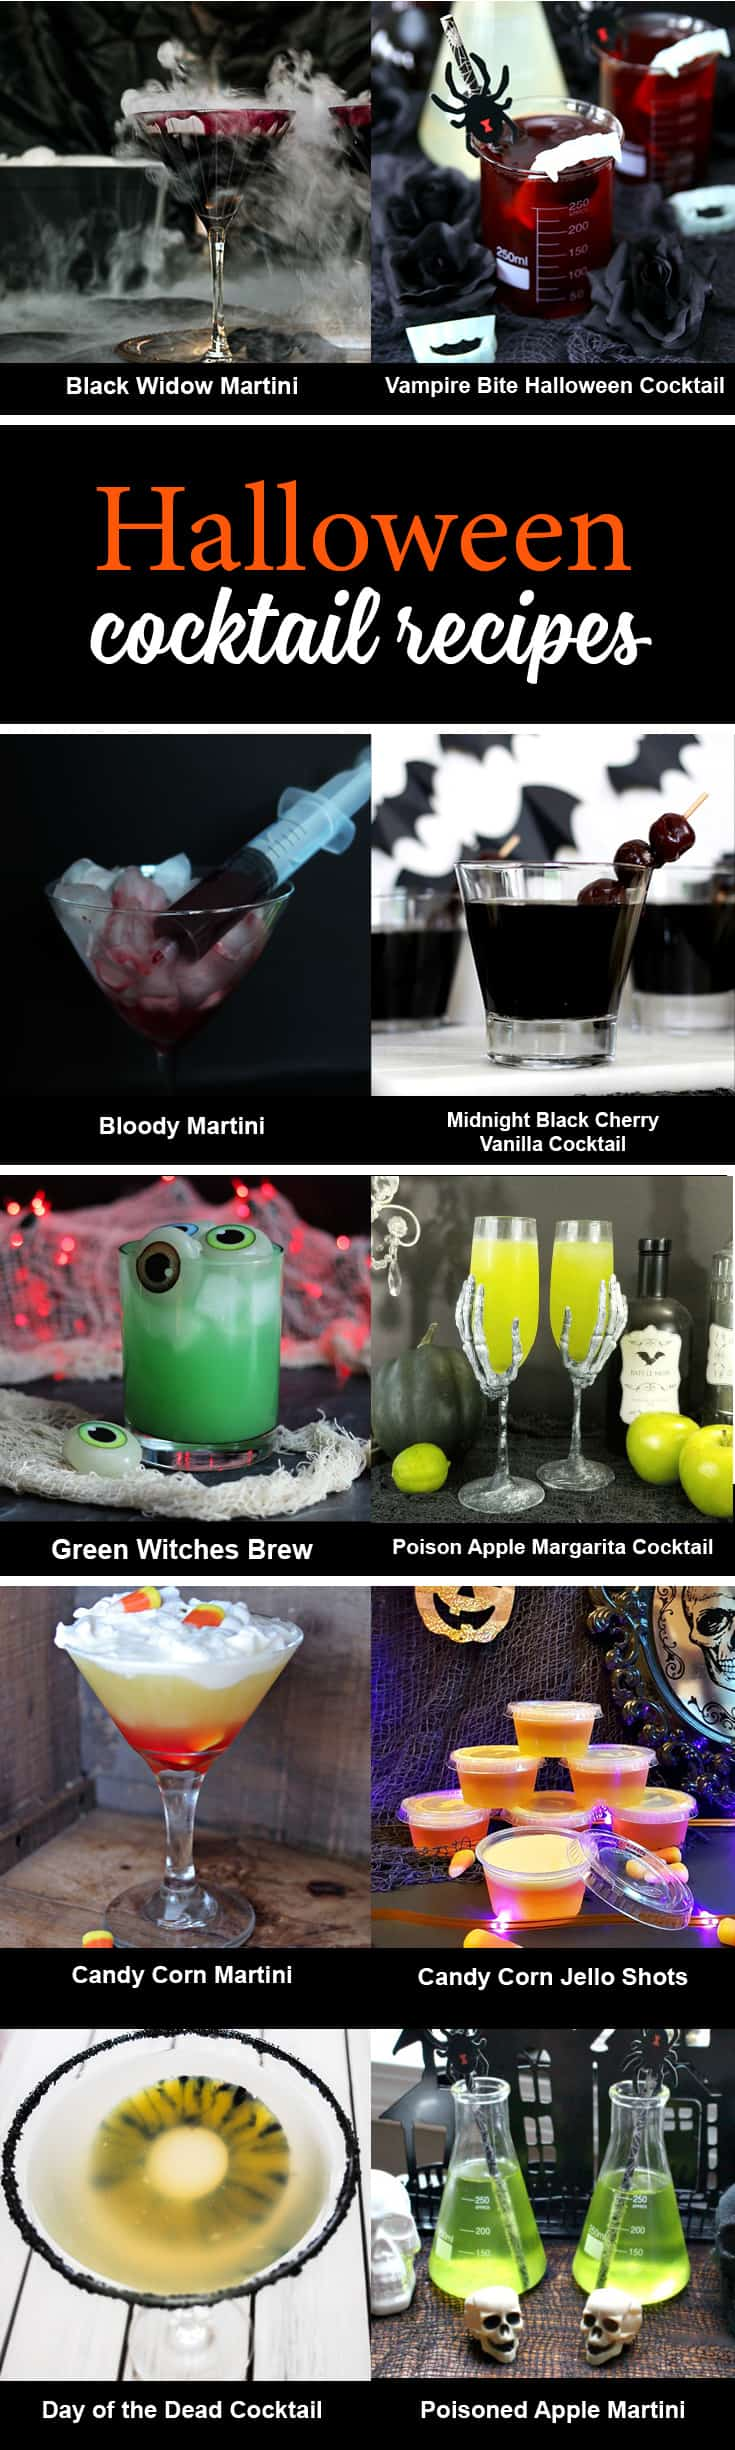 "Take a sip of the apple margarita cocktail. It will make you pucker up and say ""yum"" - www.michellejdesigns.com #michellejdesigns #fallcocktails #halloweendrinks #halloweencocktail #applemargarita #applecocktail"